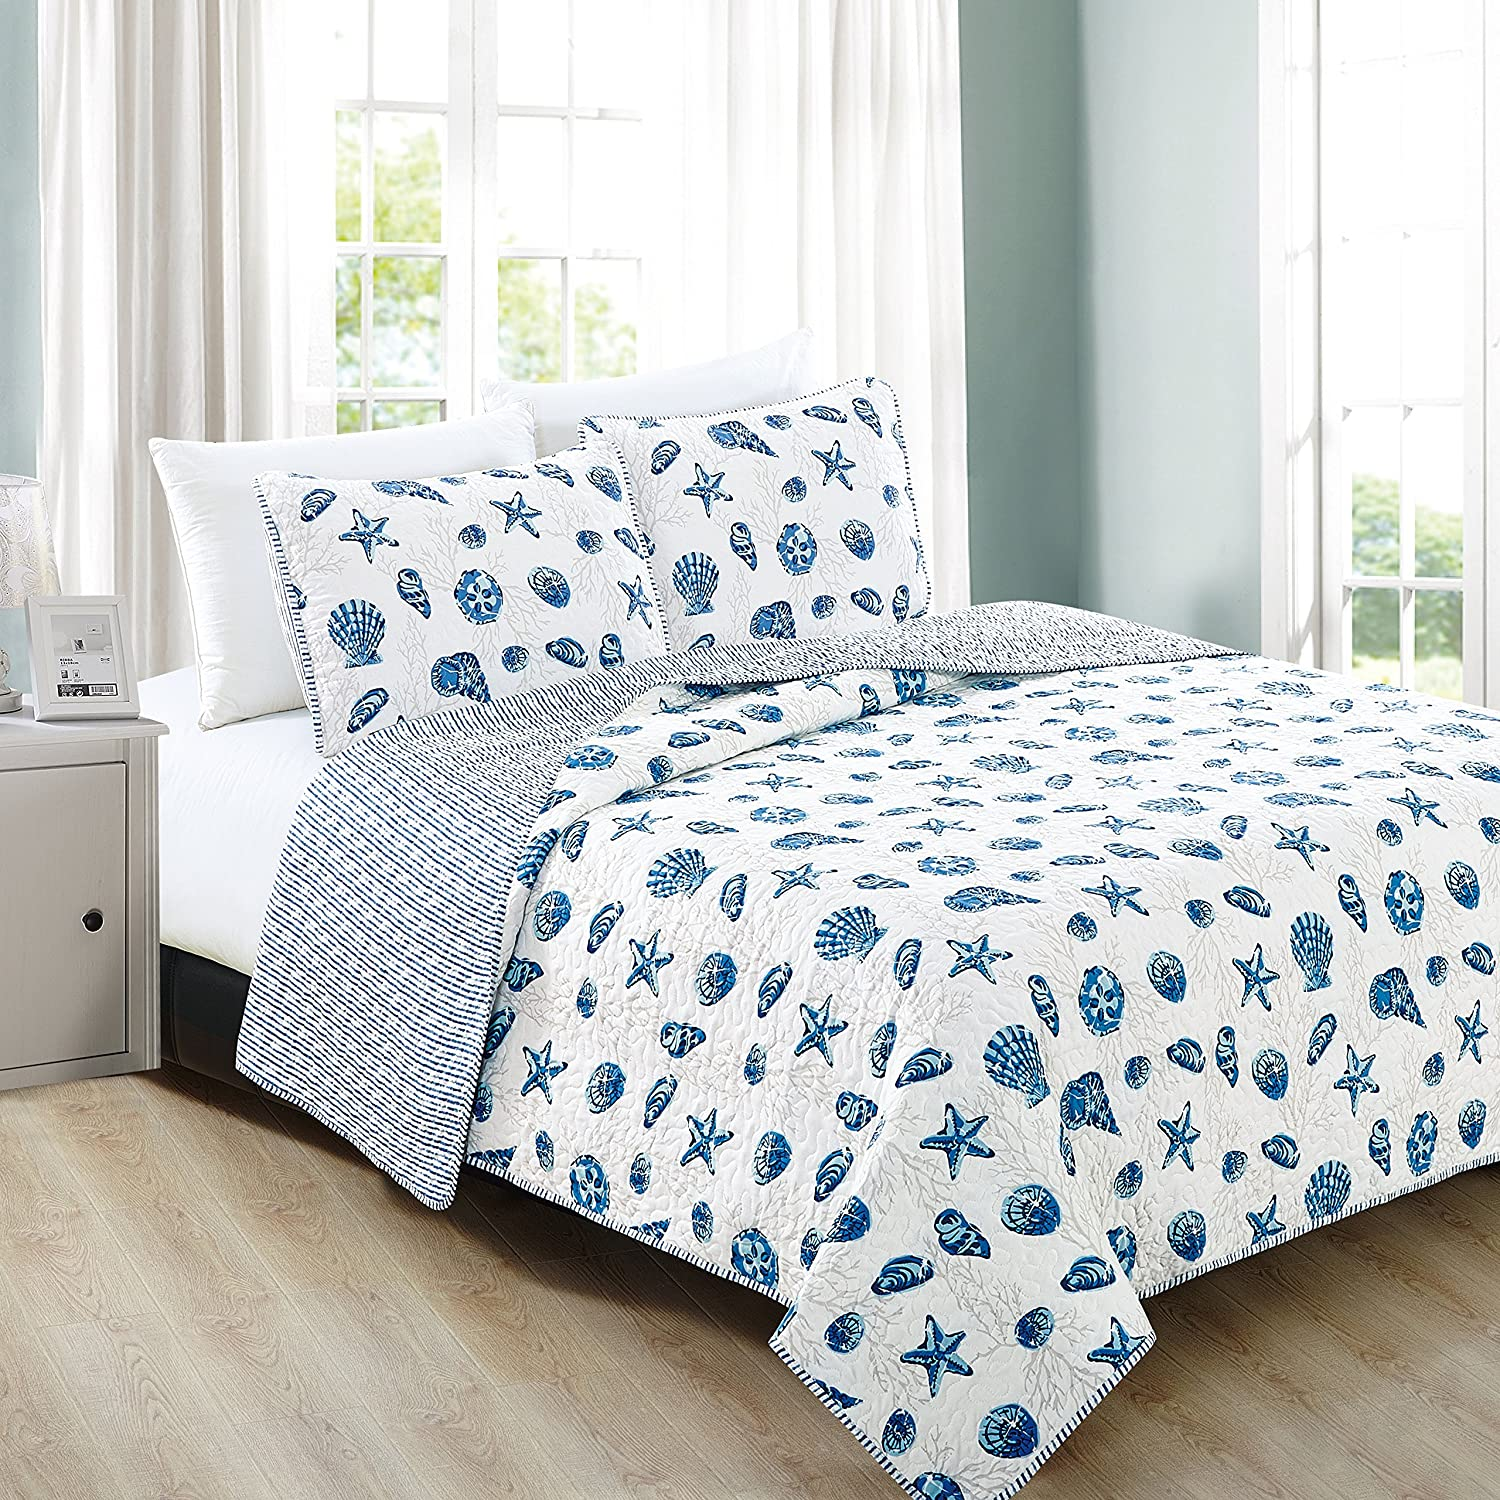 Home Fashion Designs 3-Piece Coastal Beach Theme Quilt Set with Shams. Soft All-Season Luxury Microfiber Reversible Bedspread and Coverlet. Bali Collection Brand. (Full/Queen, Blue)